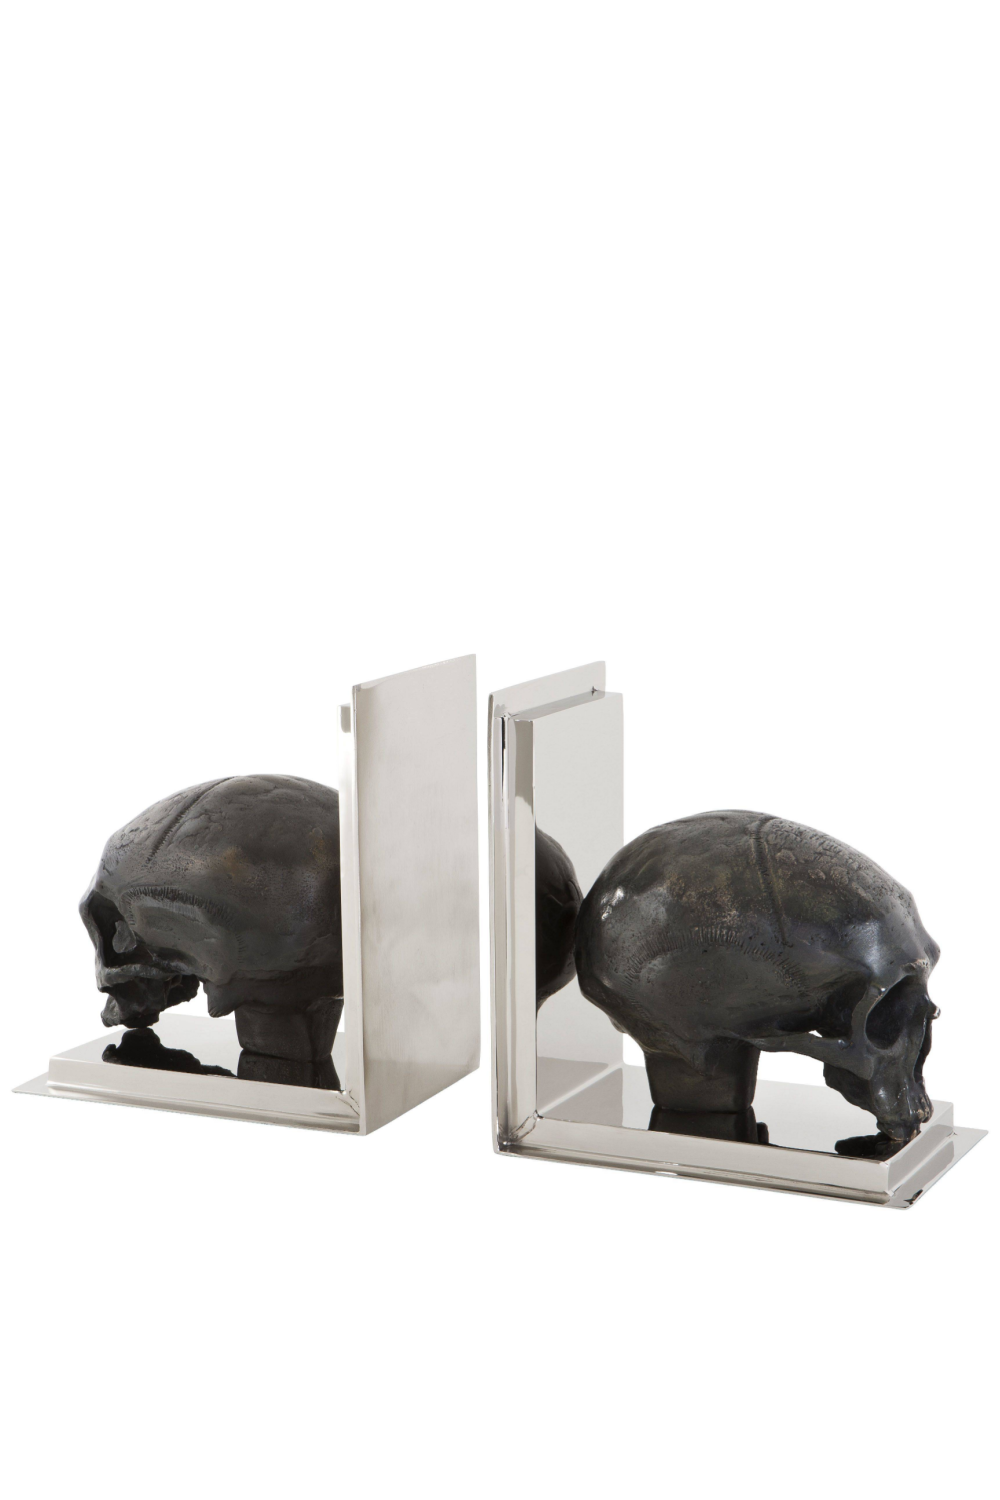 Skull Bookends set of 2 | Eichholtz | #1 Eichholtz Online Retailer